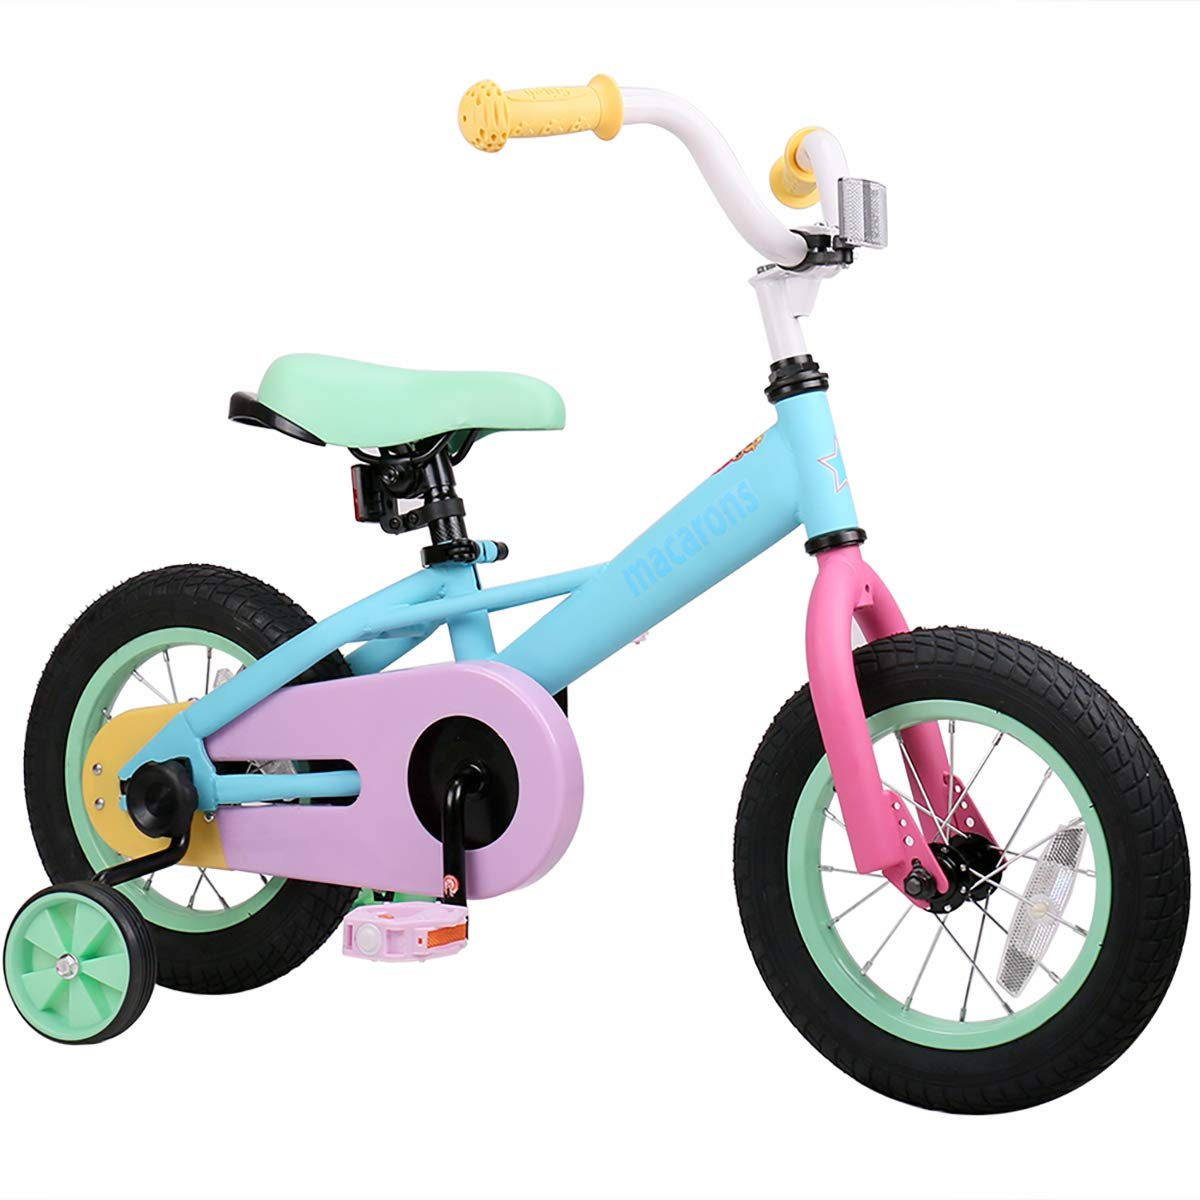 """JOYSTAR 12"""" & 14"""" Kids Bike for 2-5 Years Girls 33-41 inch Tall, Girls Bicycle with Training Wheels & Coaster Brake, 85% Assembled, Macarons product image"""